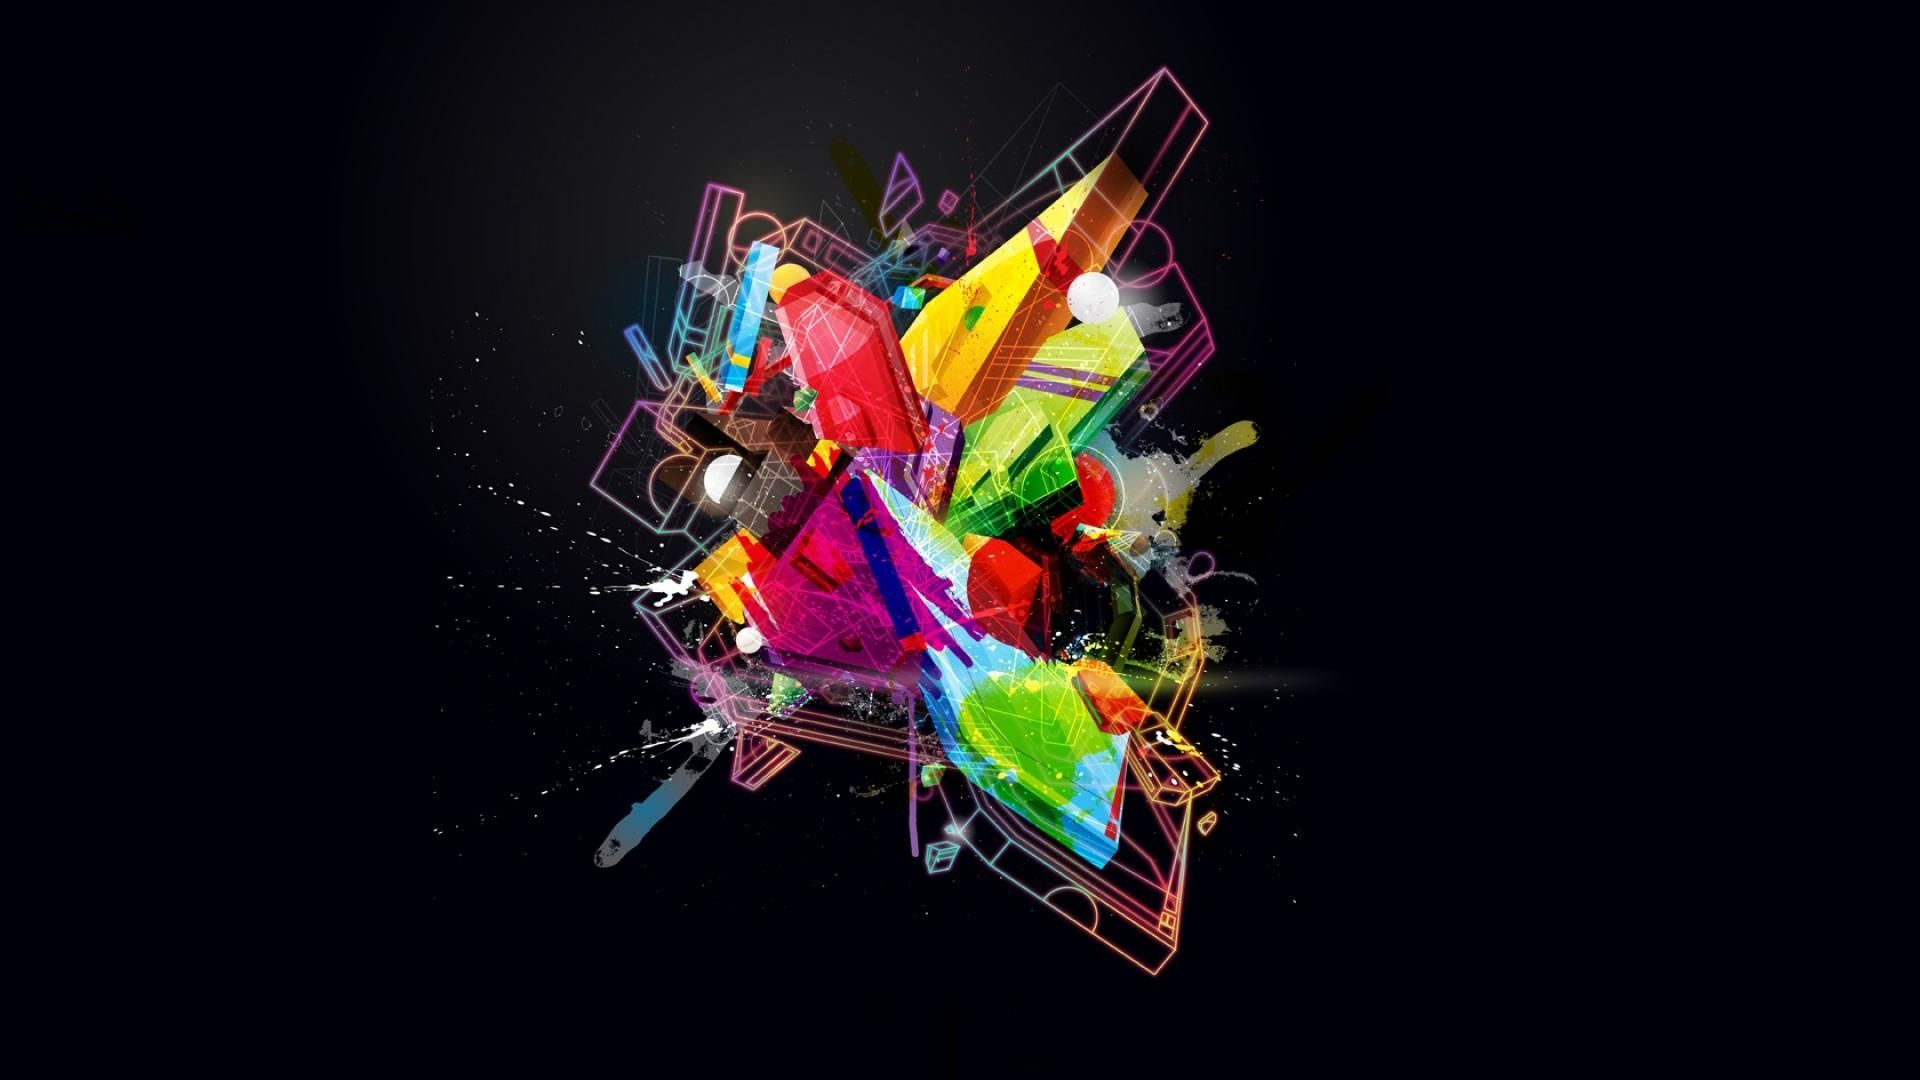 graphic designer wallpapers top free graphic designer backgrounds wallpaperaccess graphic designer wallpapers top free